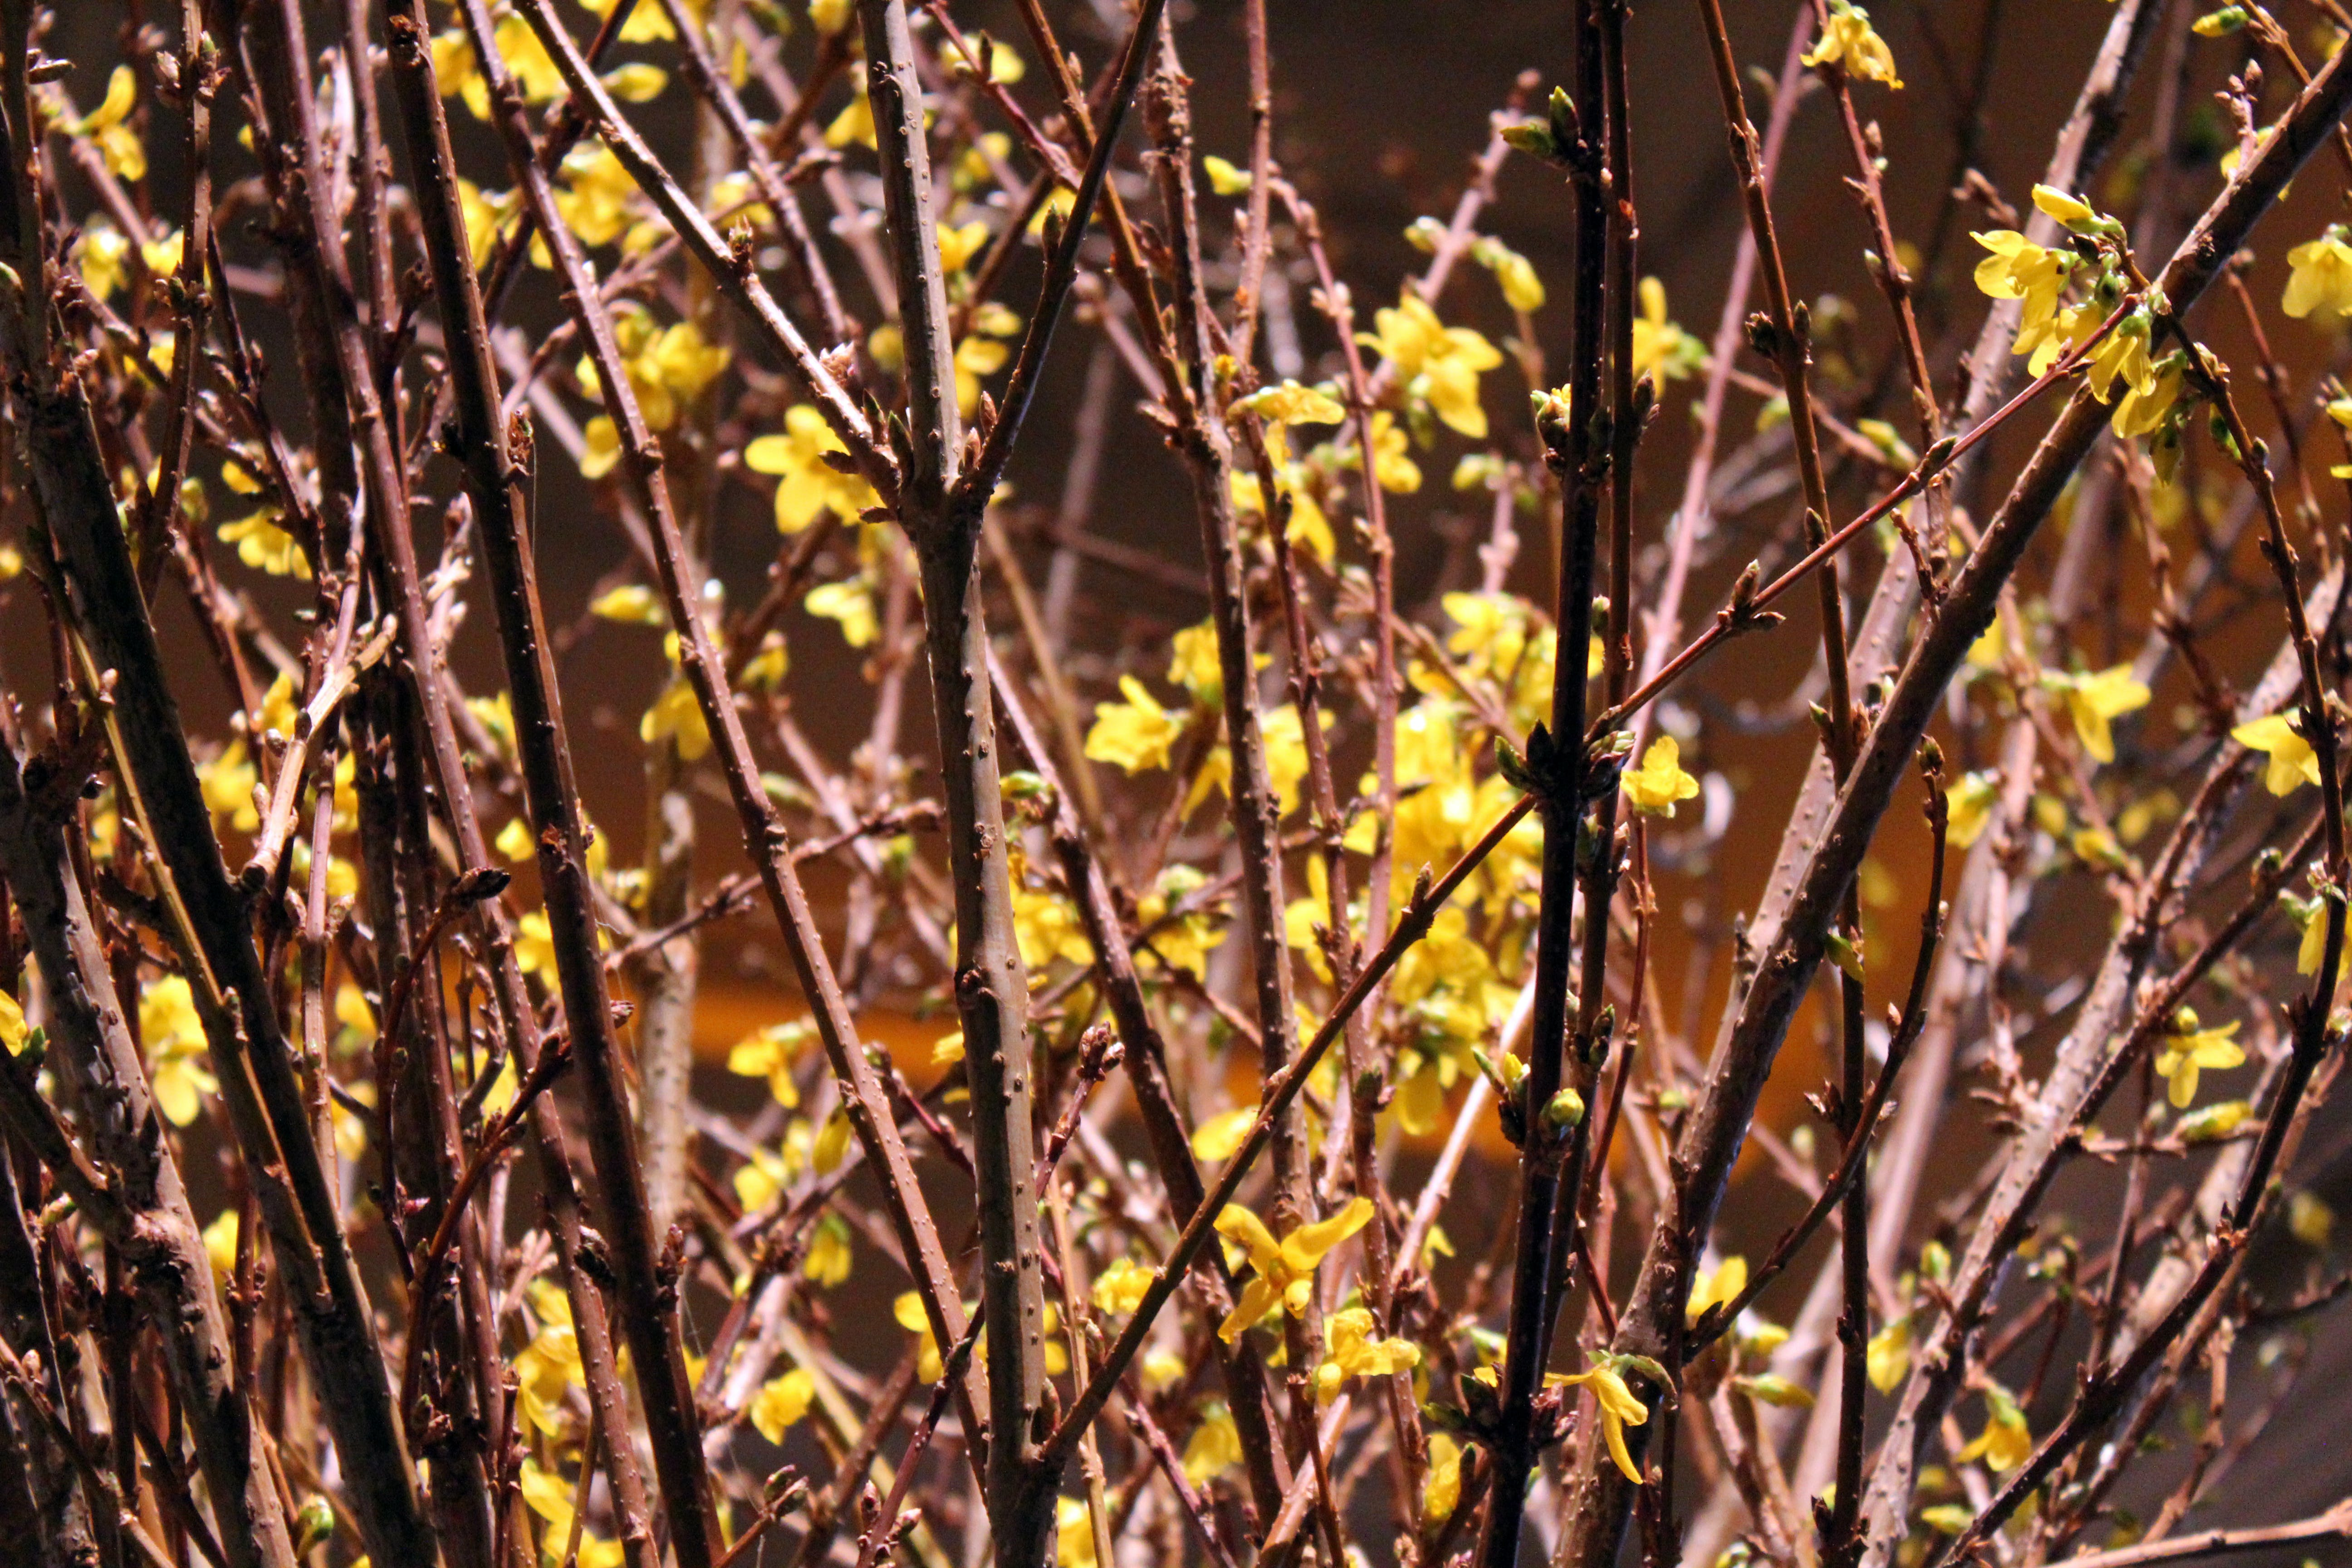 Free stock photo of flowers, branches